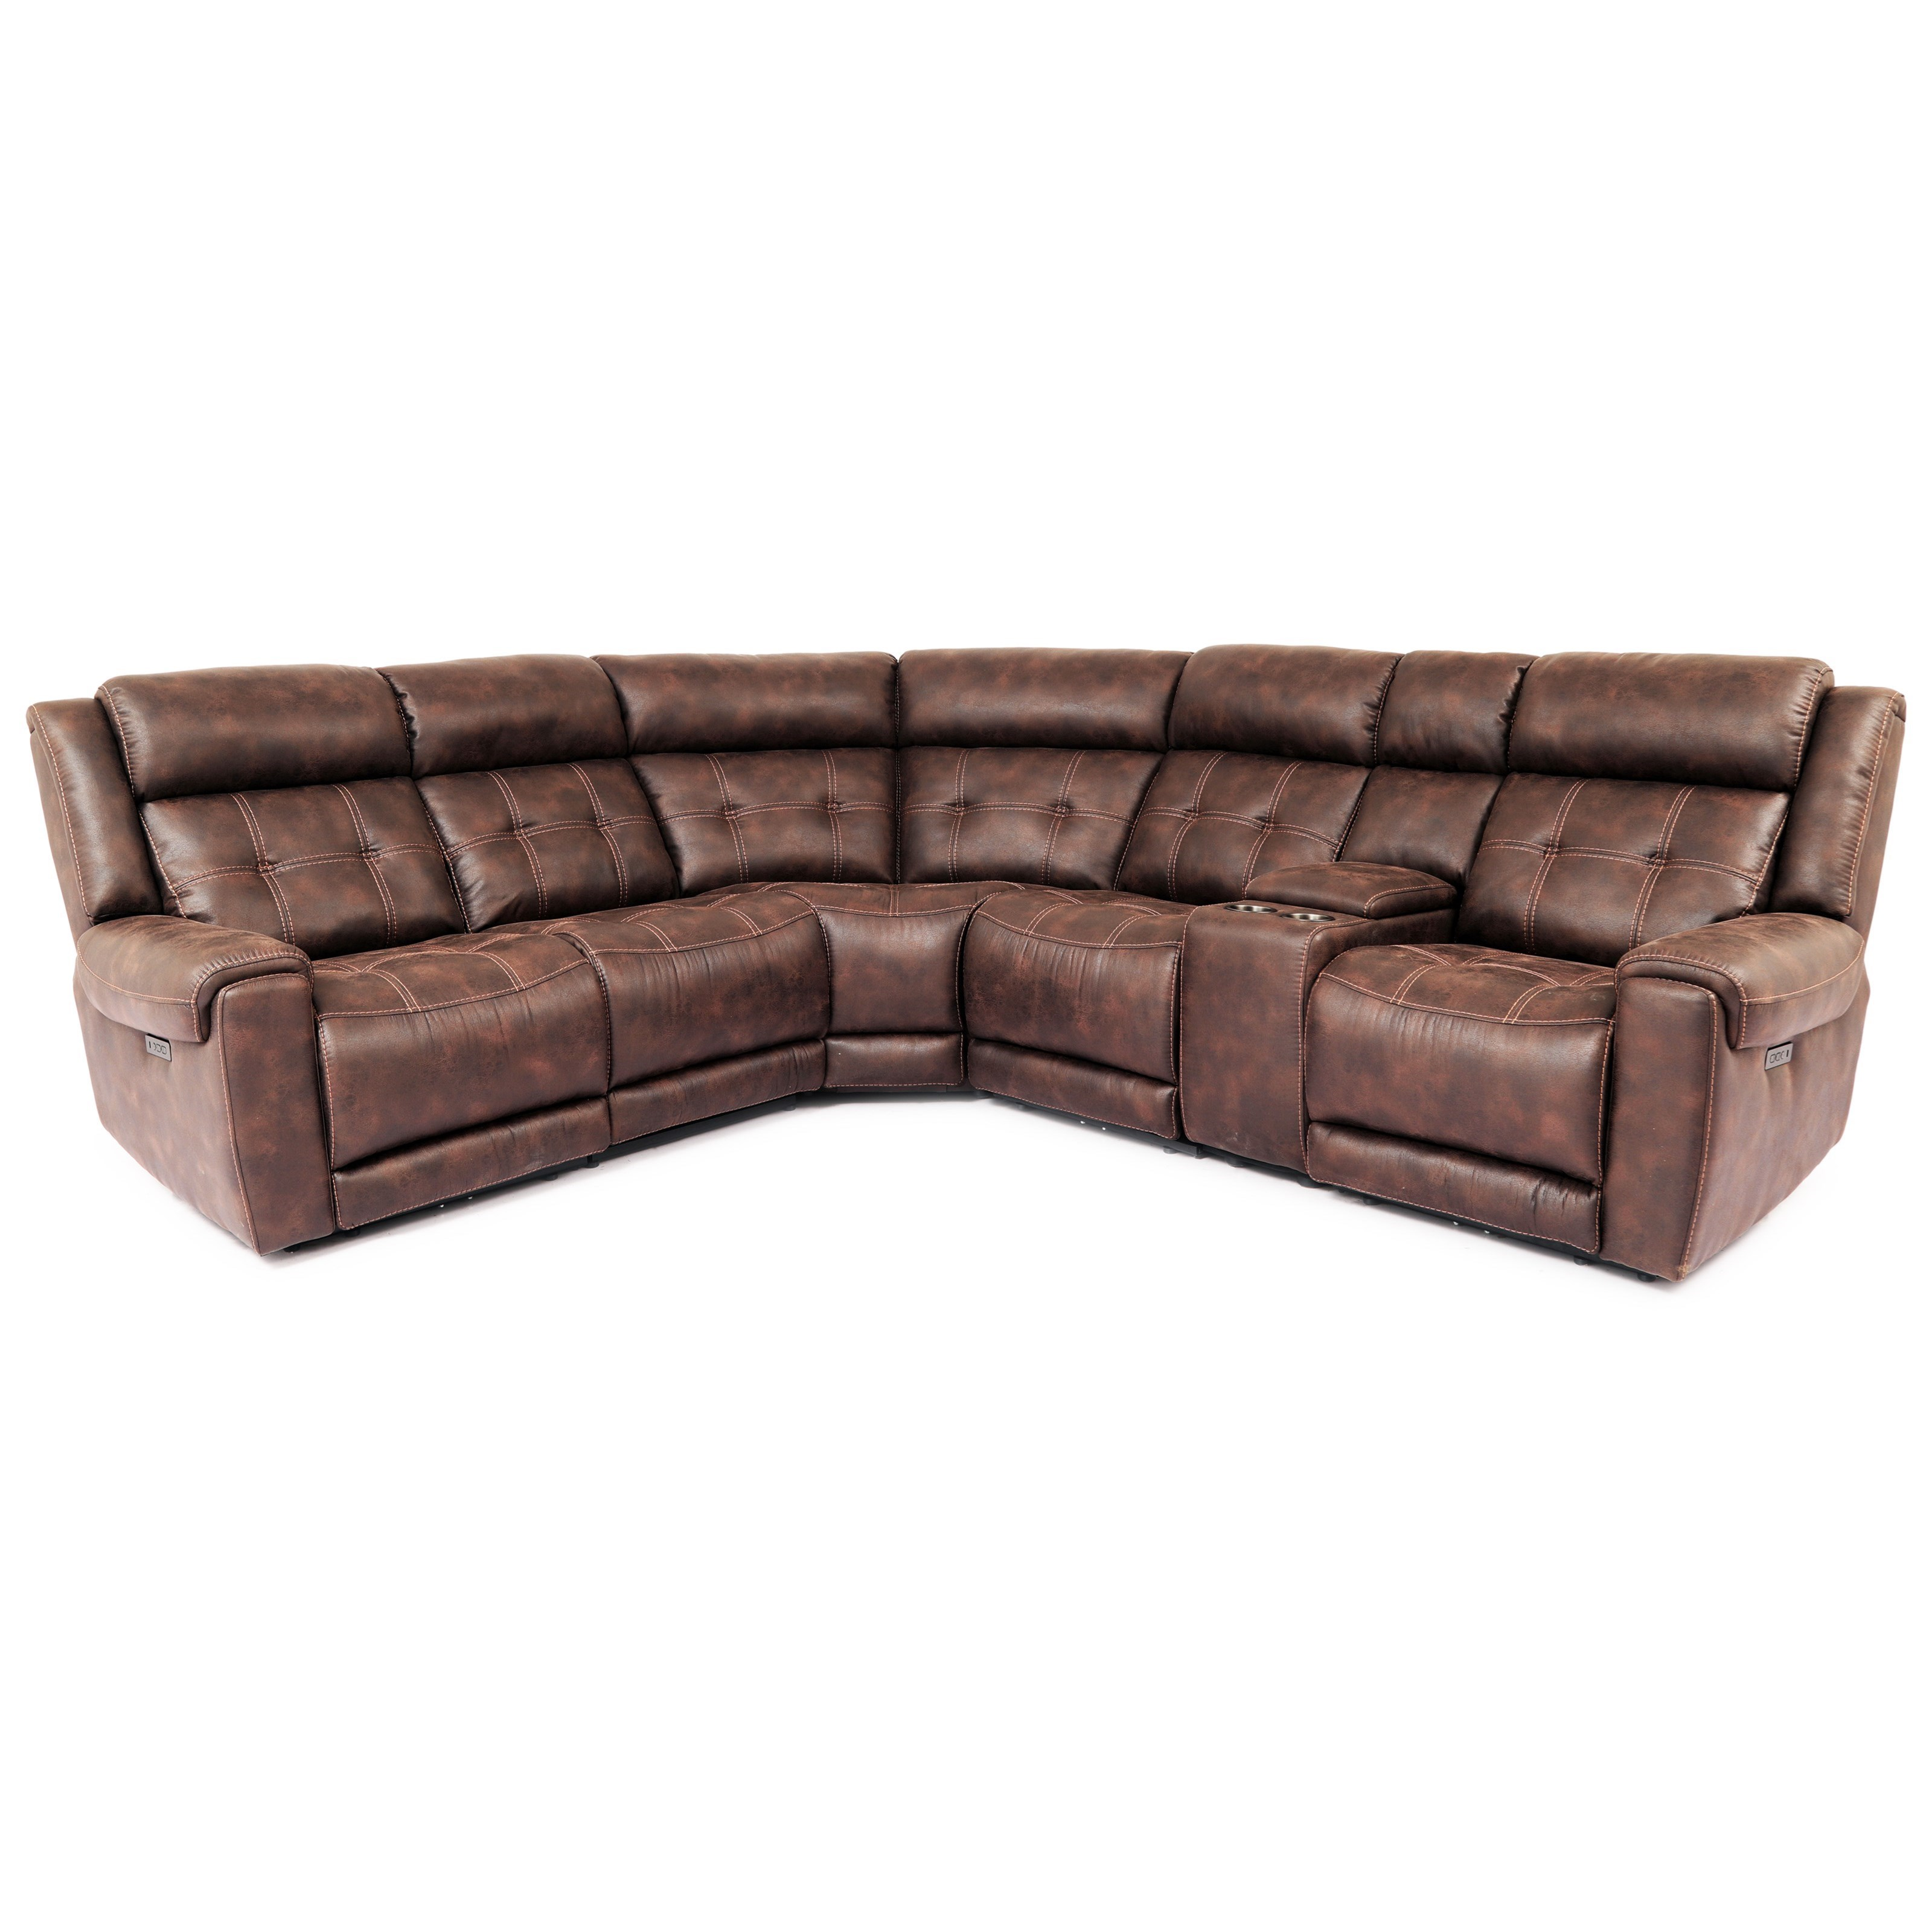 70115 7-Piece Power Reclining Sectional by Cheers at Lagniappe Home Store